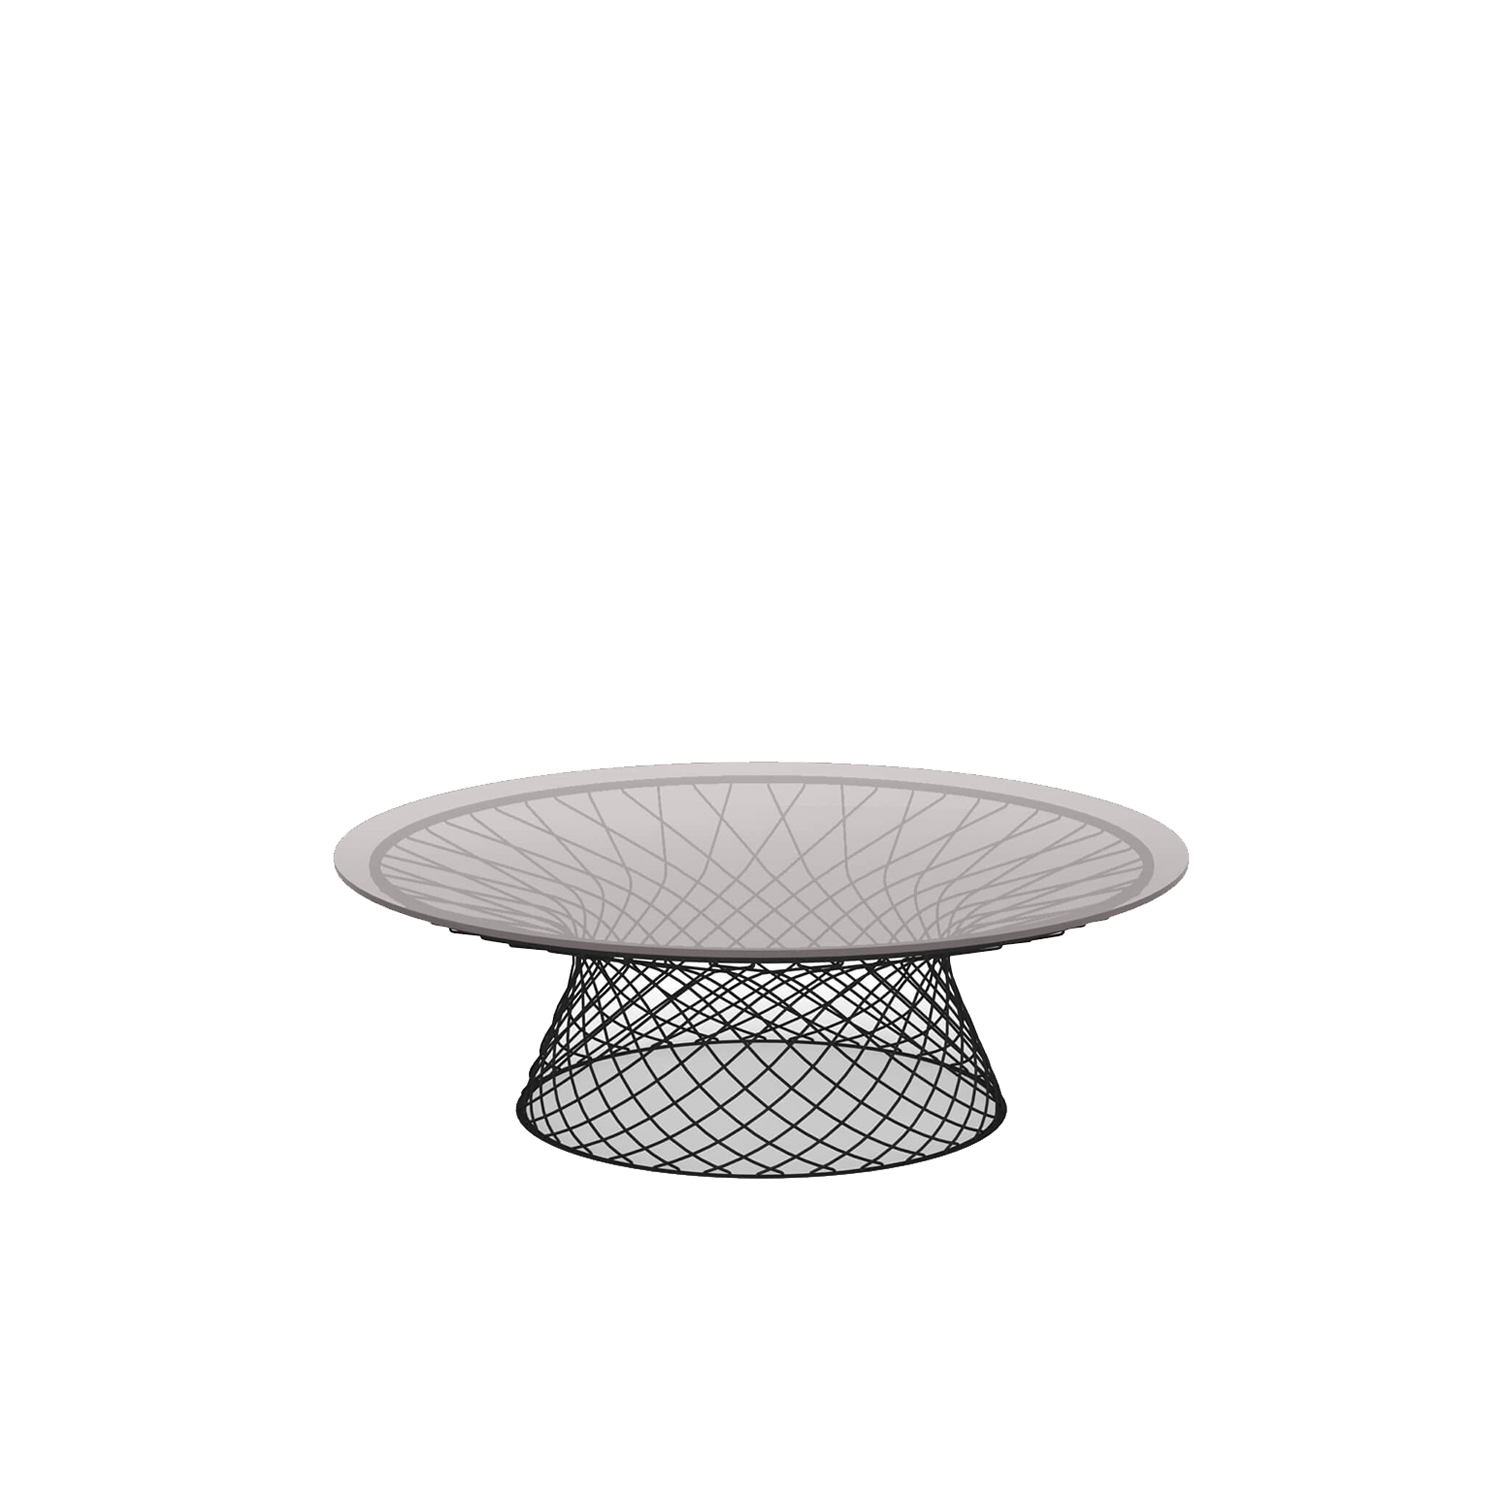 Heaven Low Table - <p>The idea underlying the Heaven project is that of lightness derived from forms emerging from hollow spaces bordered by interweaving lines.</p>